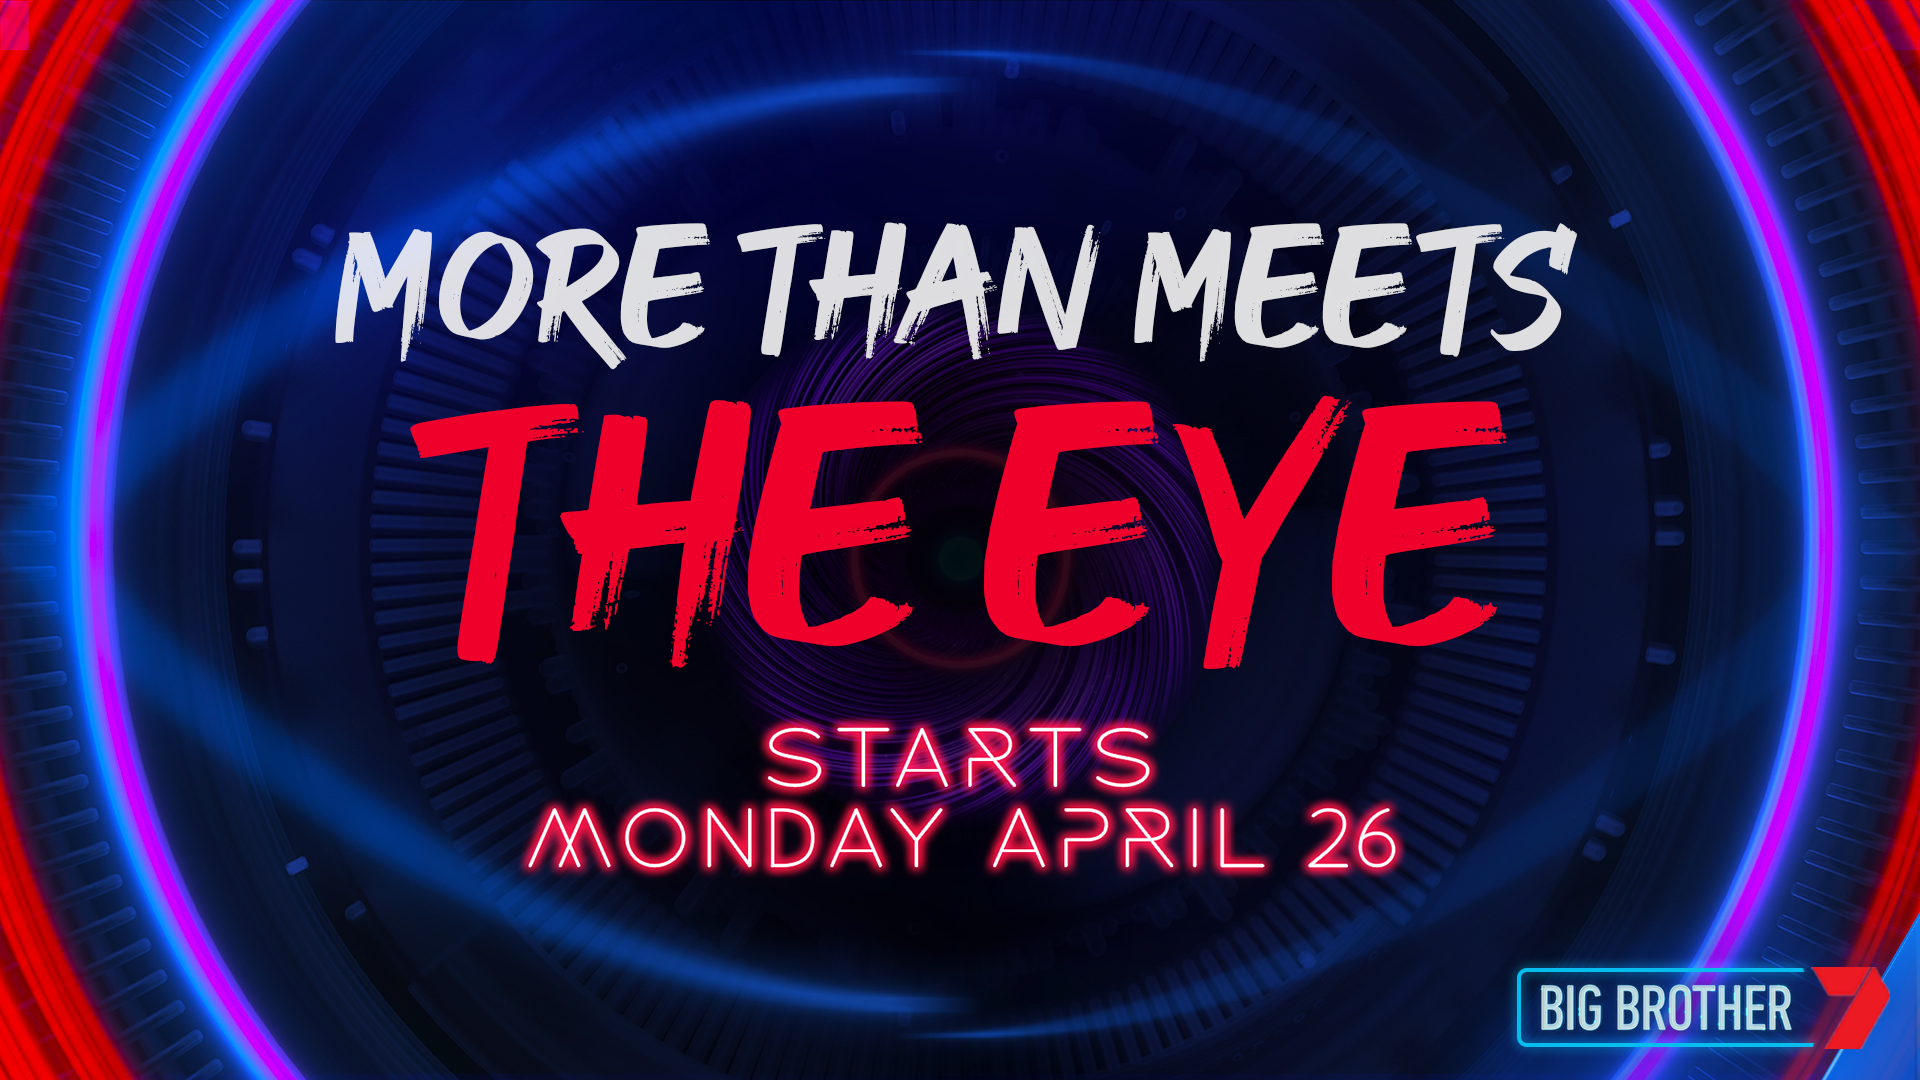 Big Brother is back and ready to play on Monday, 26 April